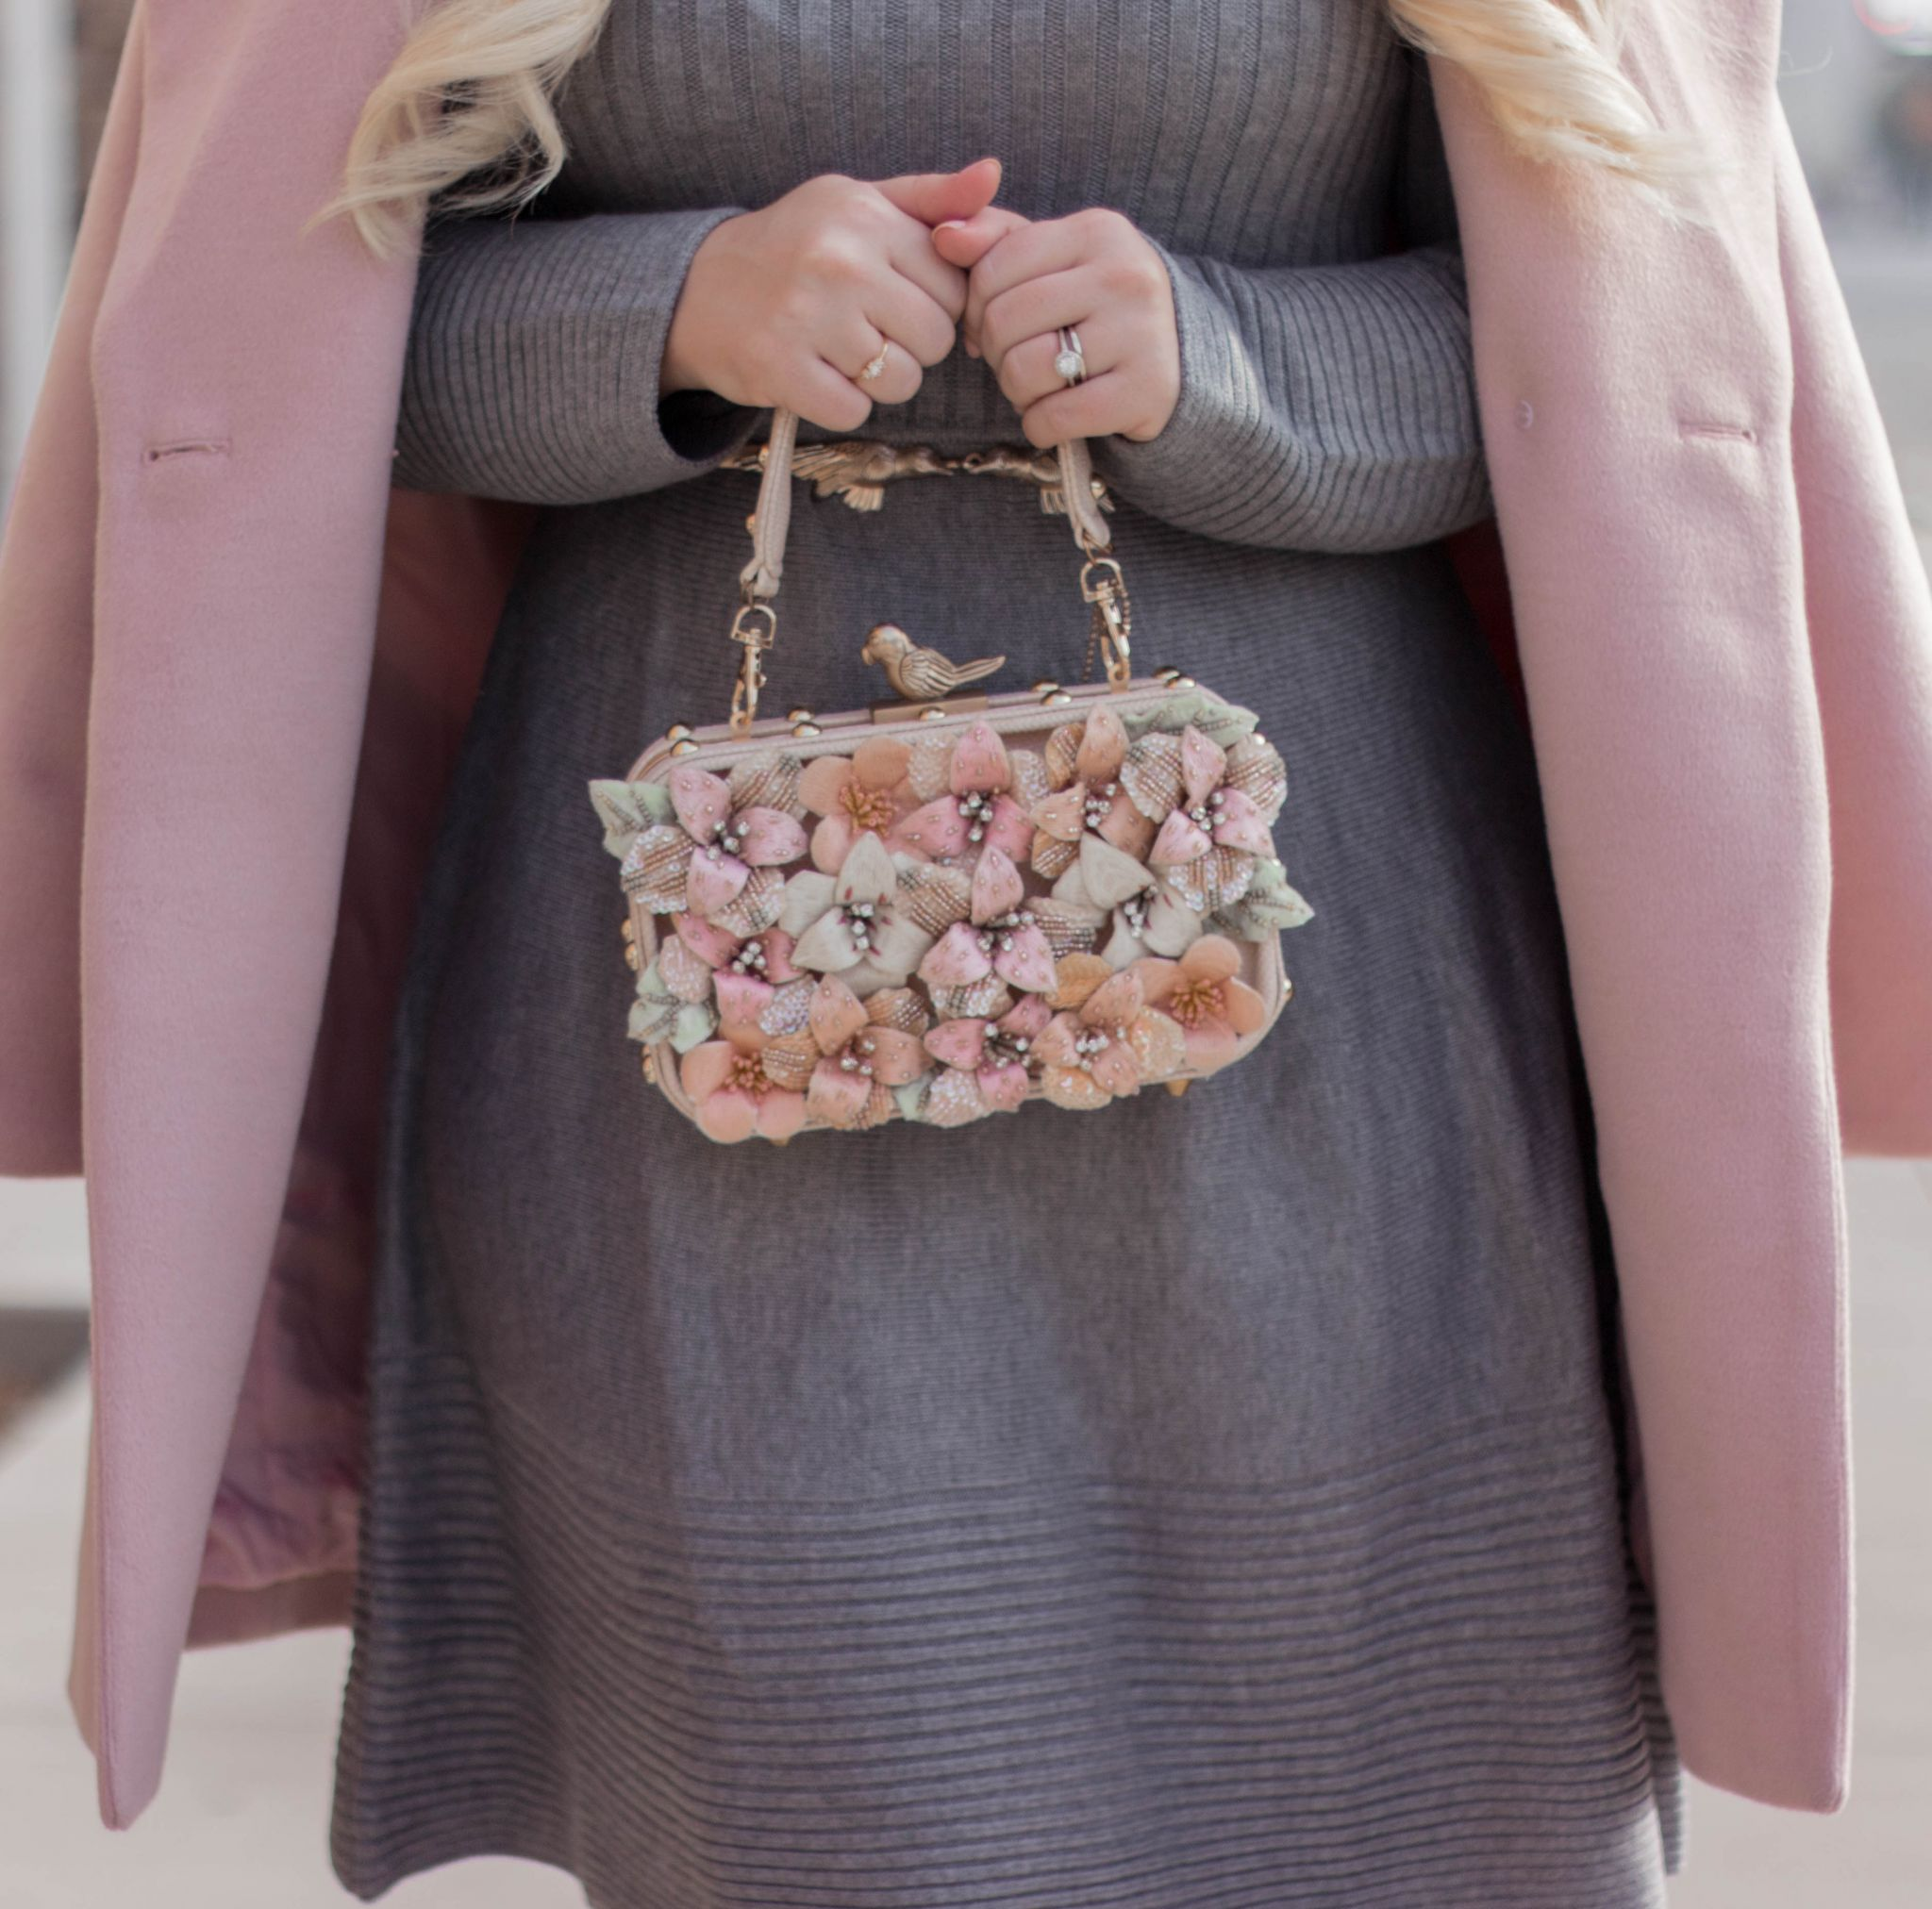 Fashion Blogger Elizabeth Hugen of Lizzie in Lace shares three ways to de-stress during the holidays along with a feminine grey and pink sweater dress outfit